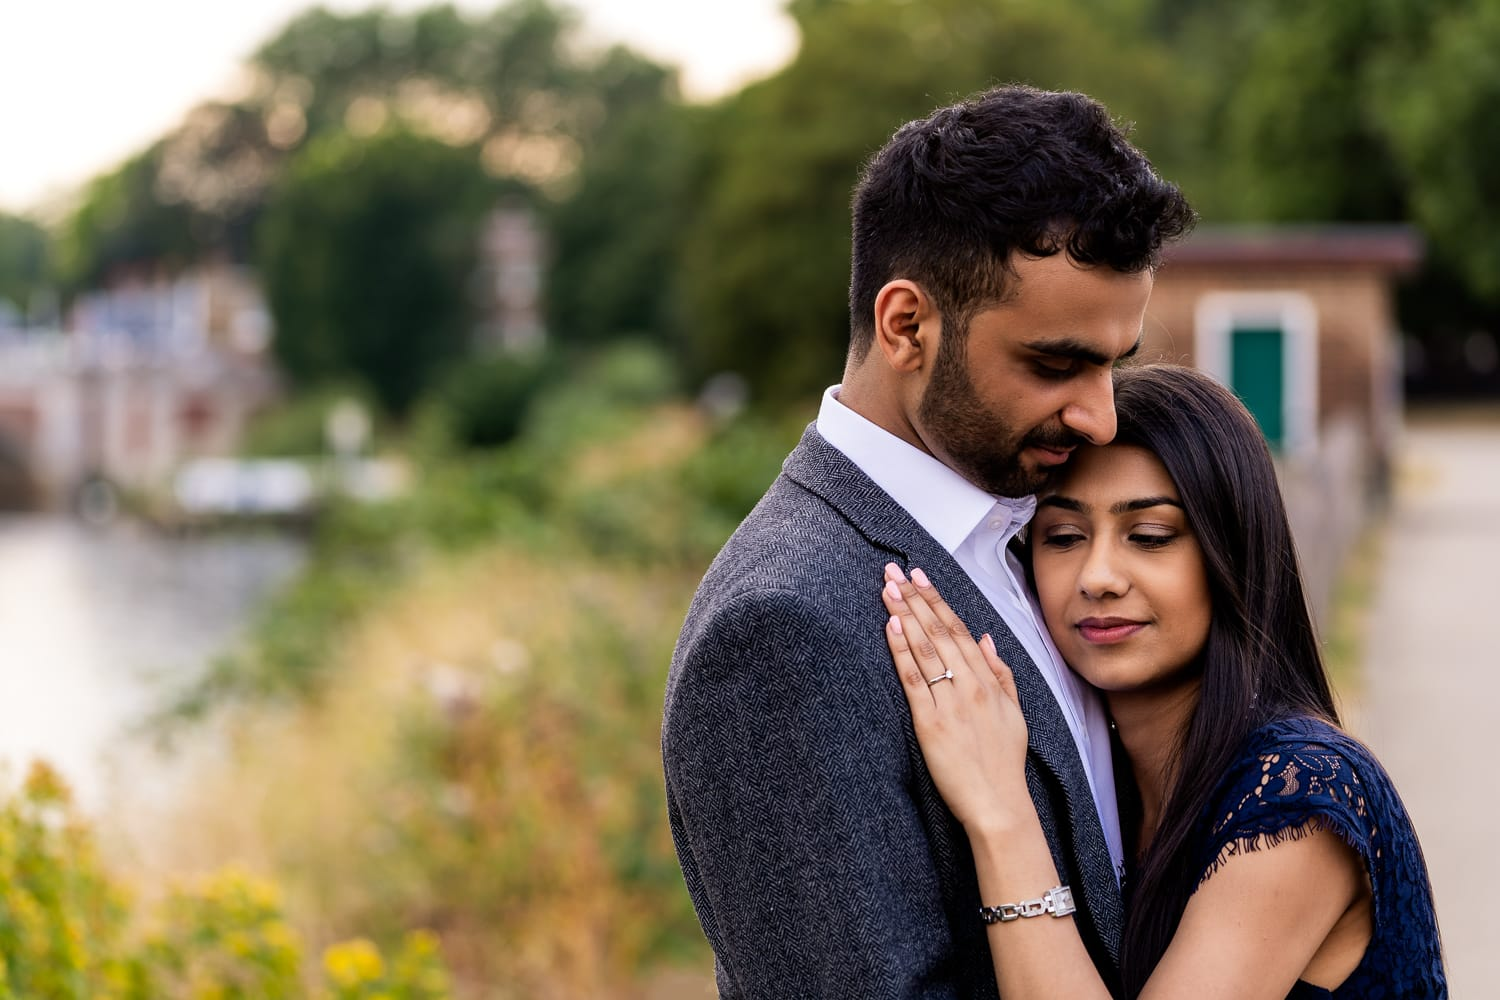 sweet intimate moment captured of couple during proposal wedding shoot | Alex Buckland Photography